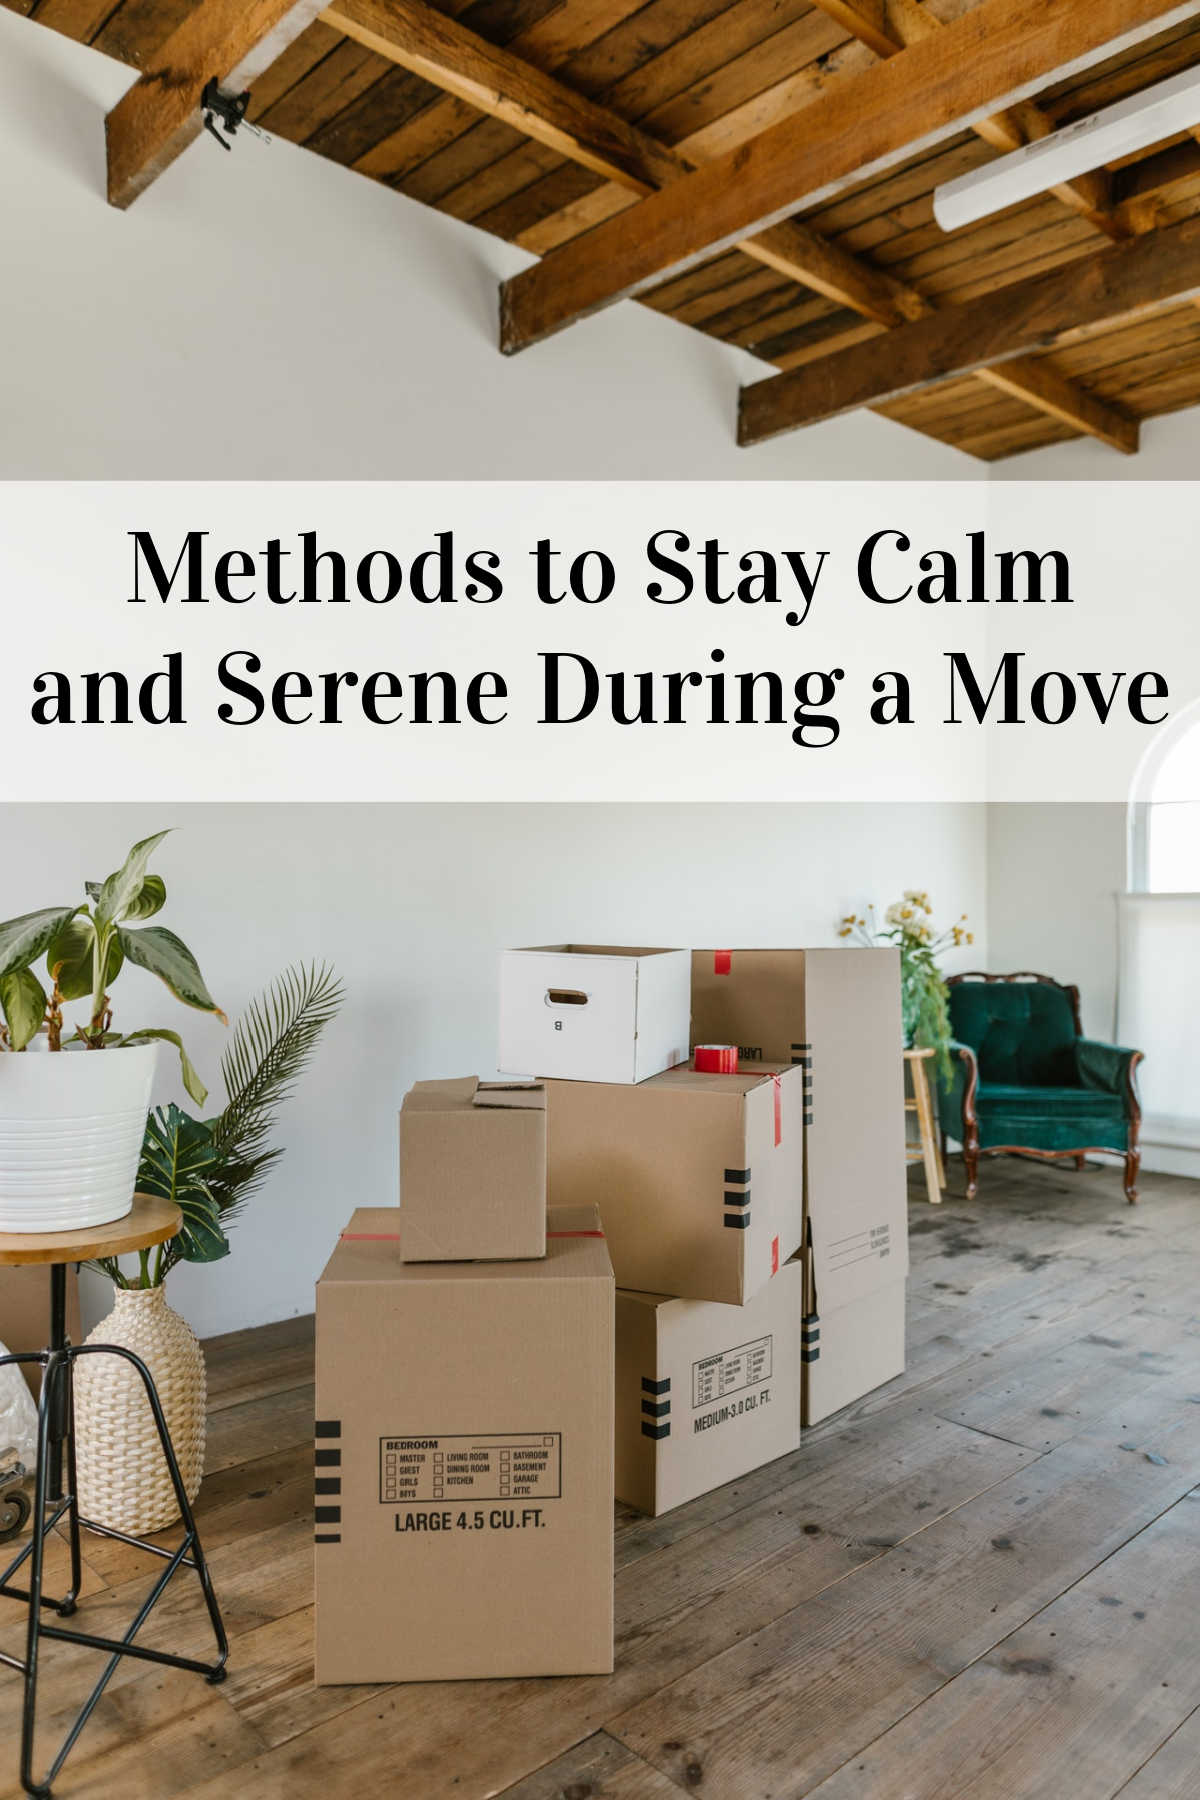 Methods to Stay Calm and Serene During a Move